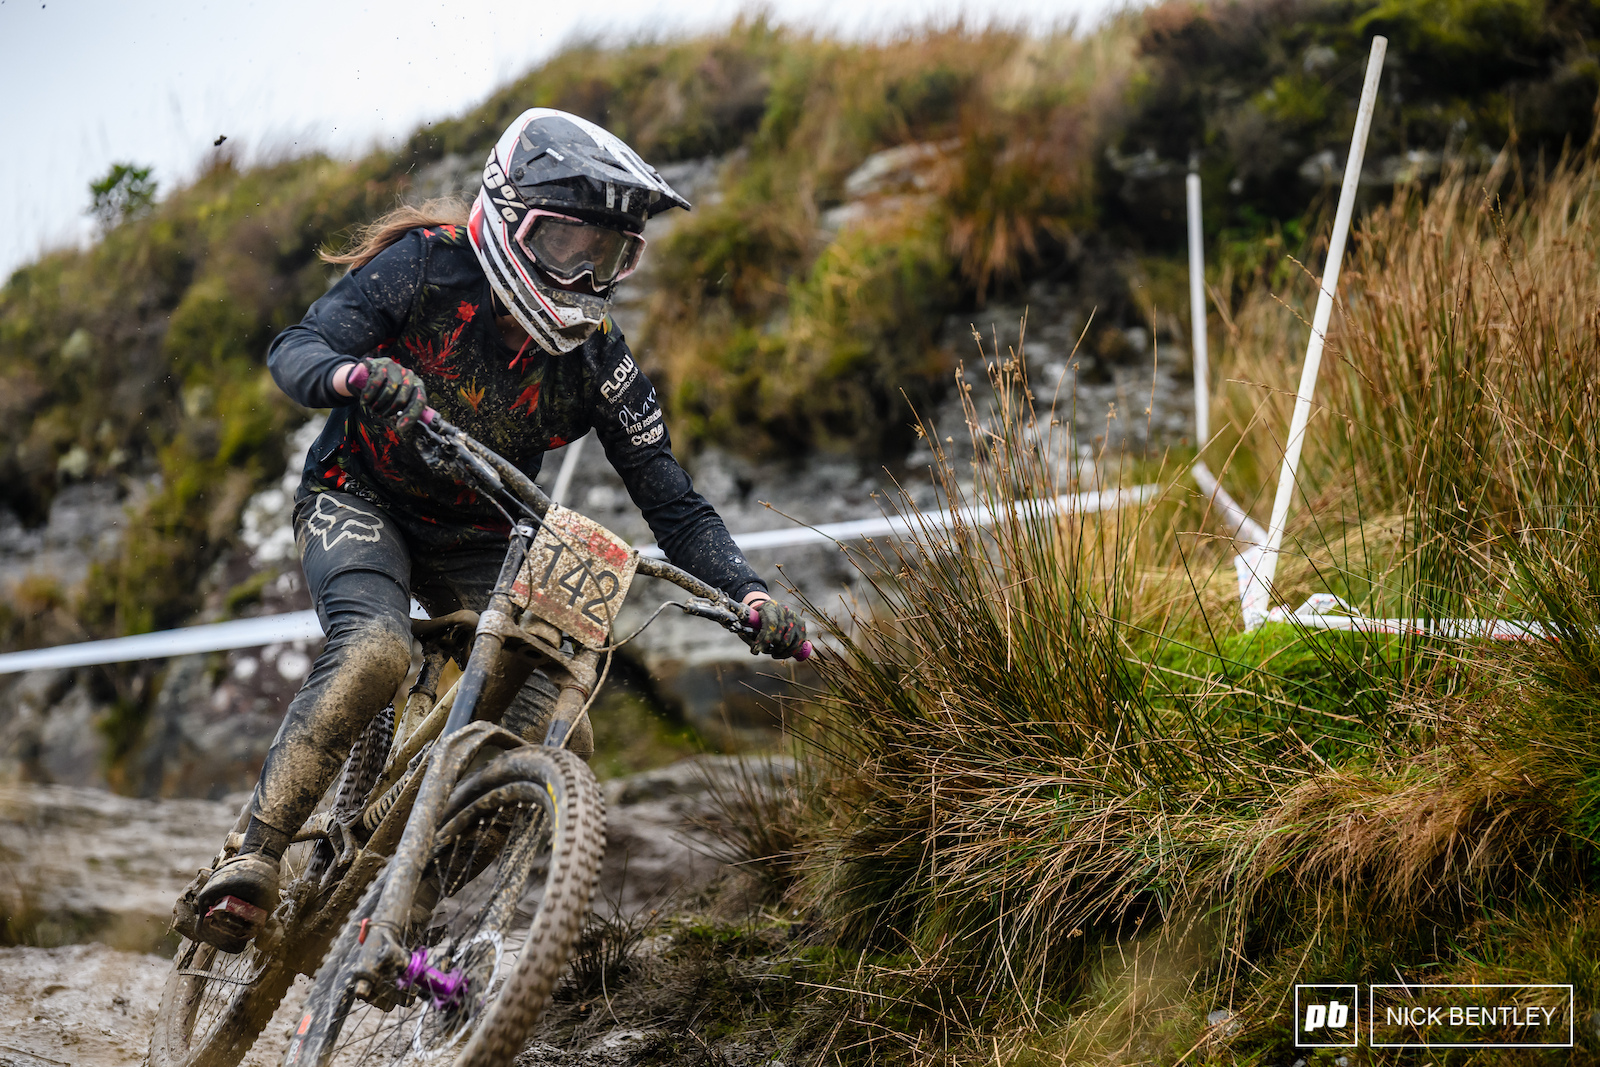 Plenty of mud covered riders from various offs throughout the day